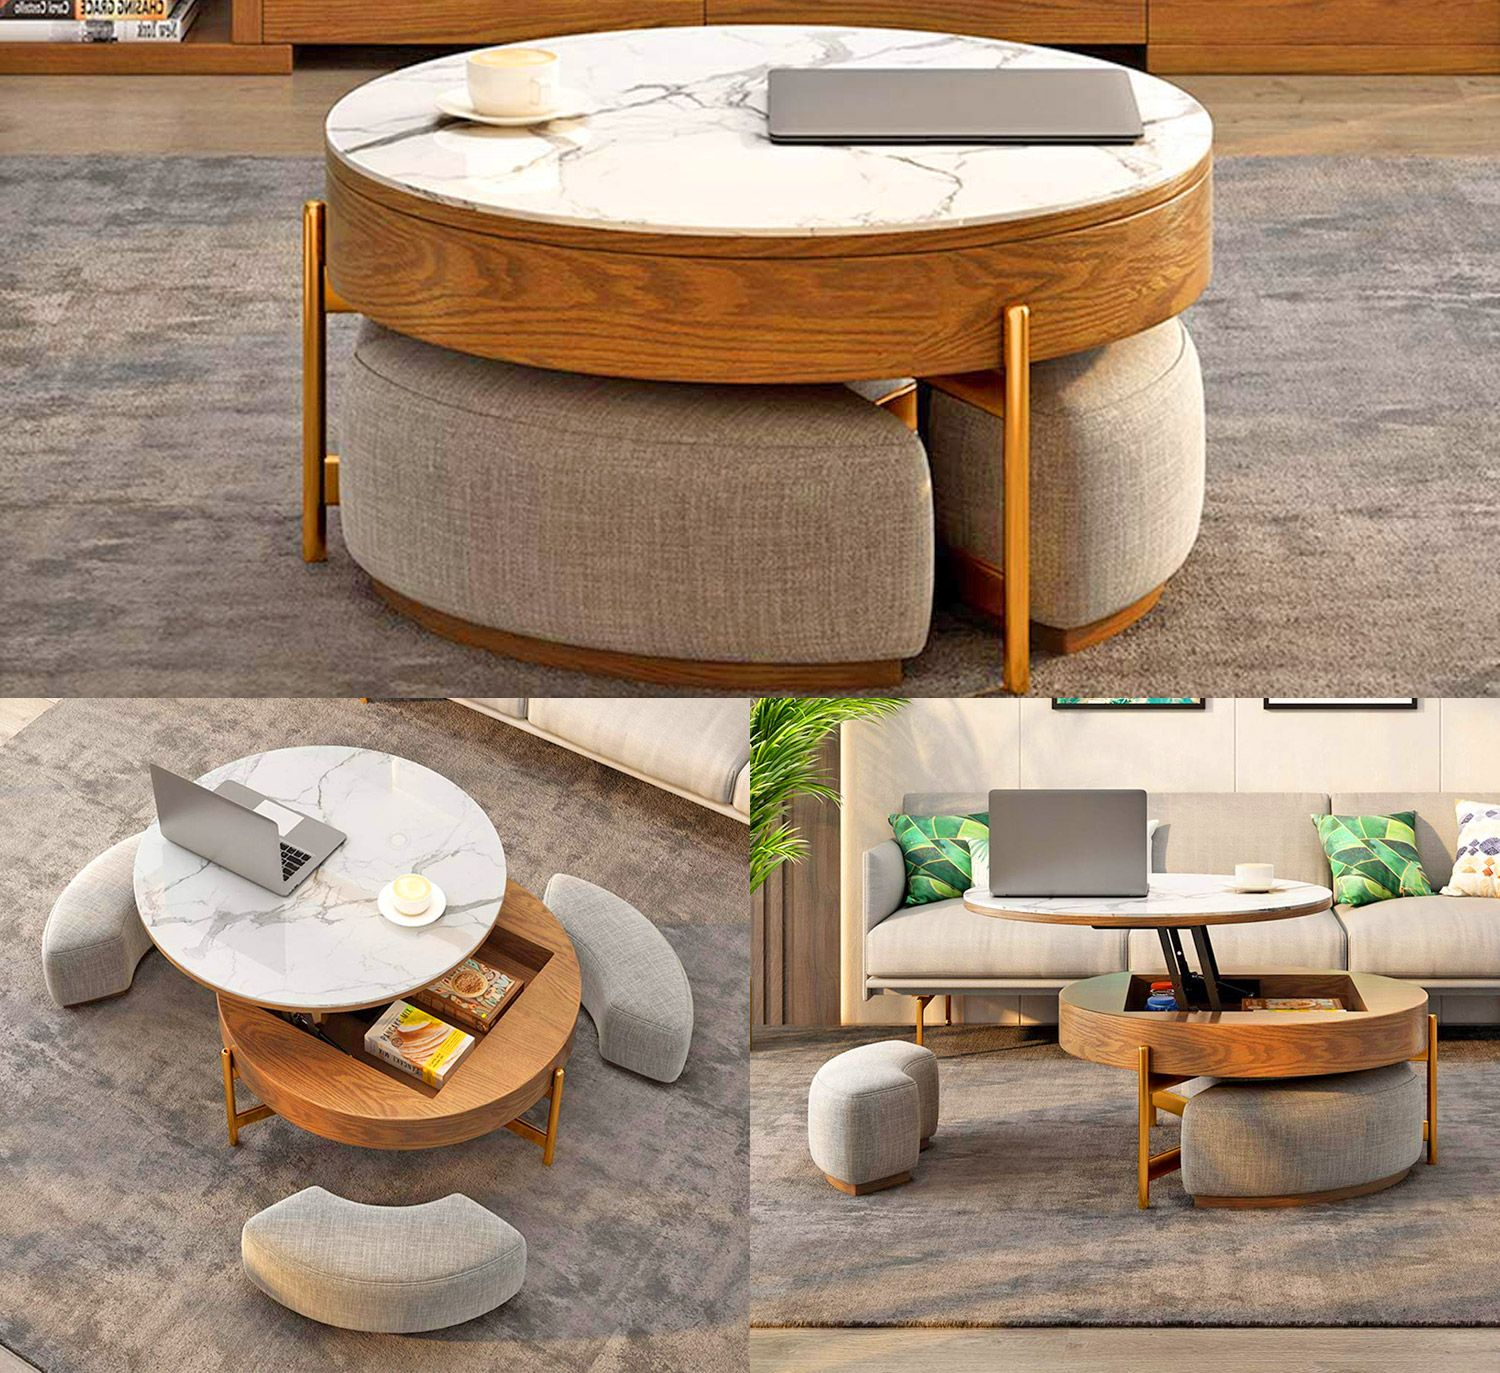 This Amazing Rising Coffee Table Has 3 Integrated Ottomans That